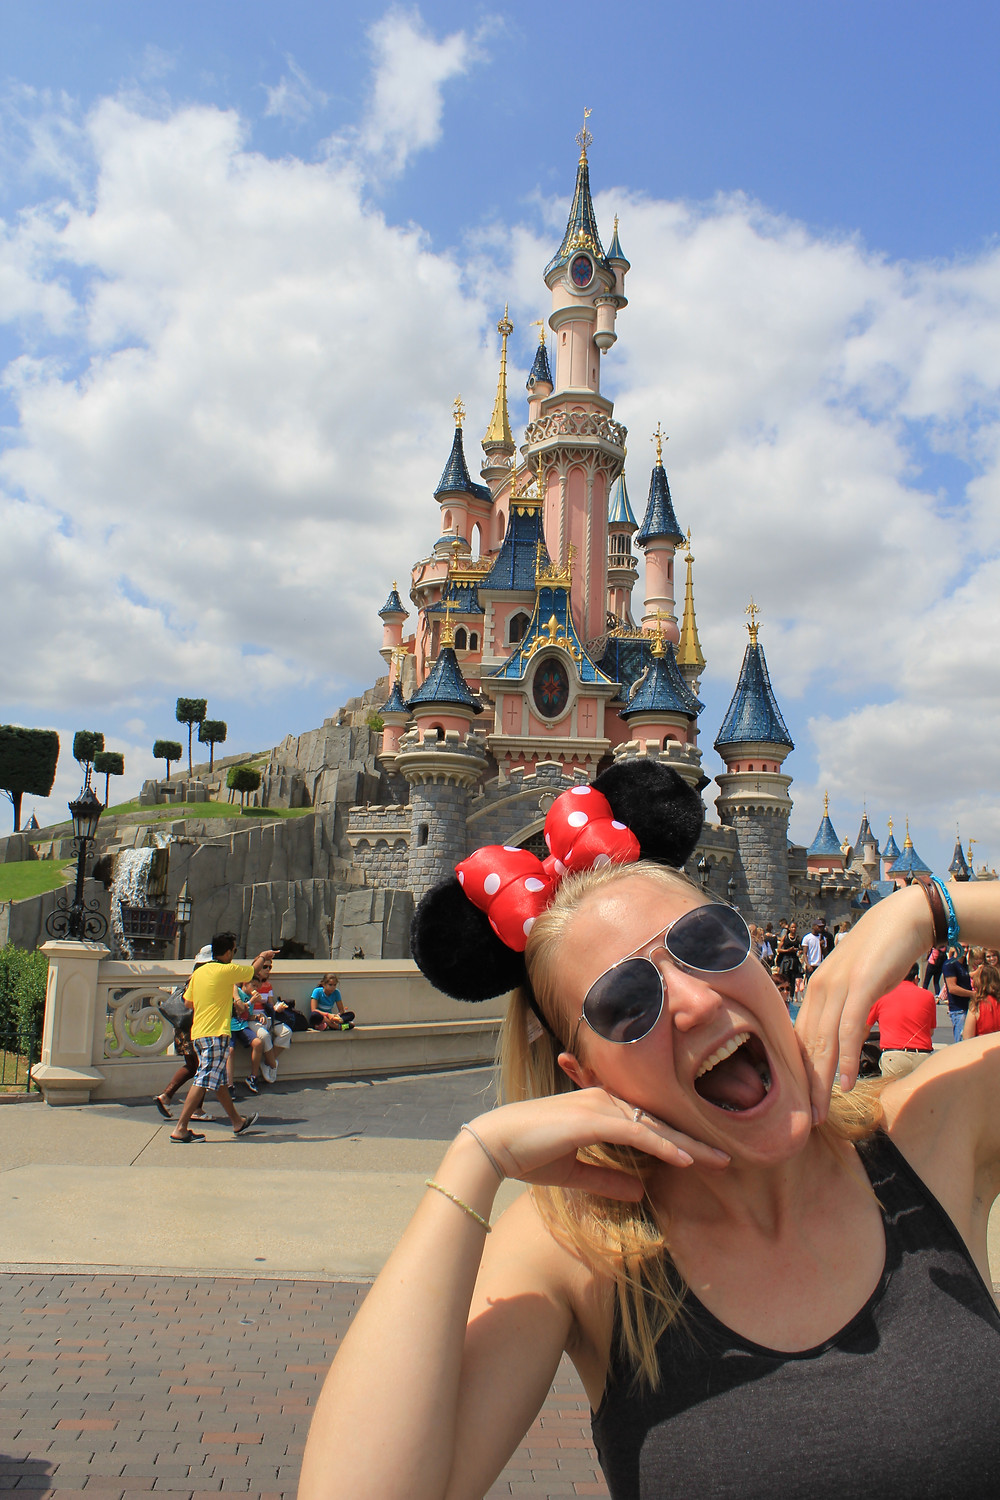 Corrine wearing Minnie Mouse ears in Disneyland Paris